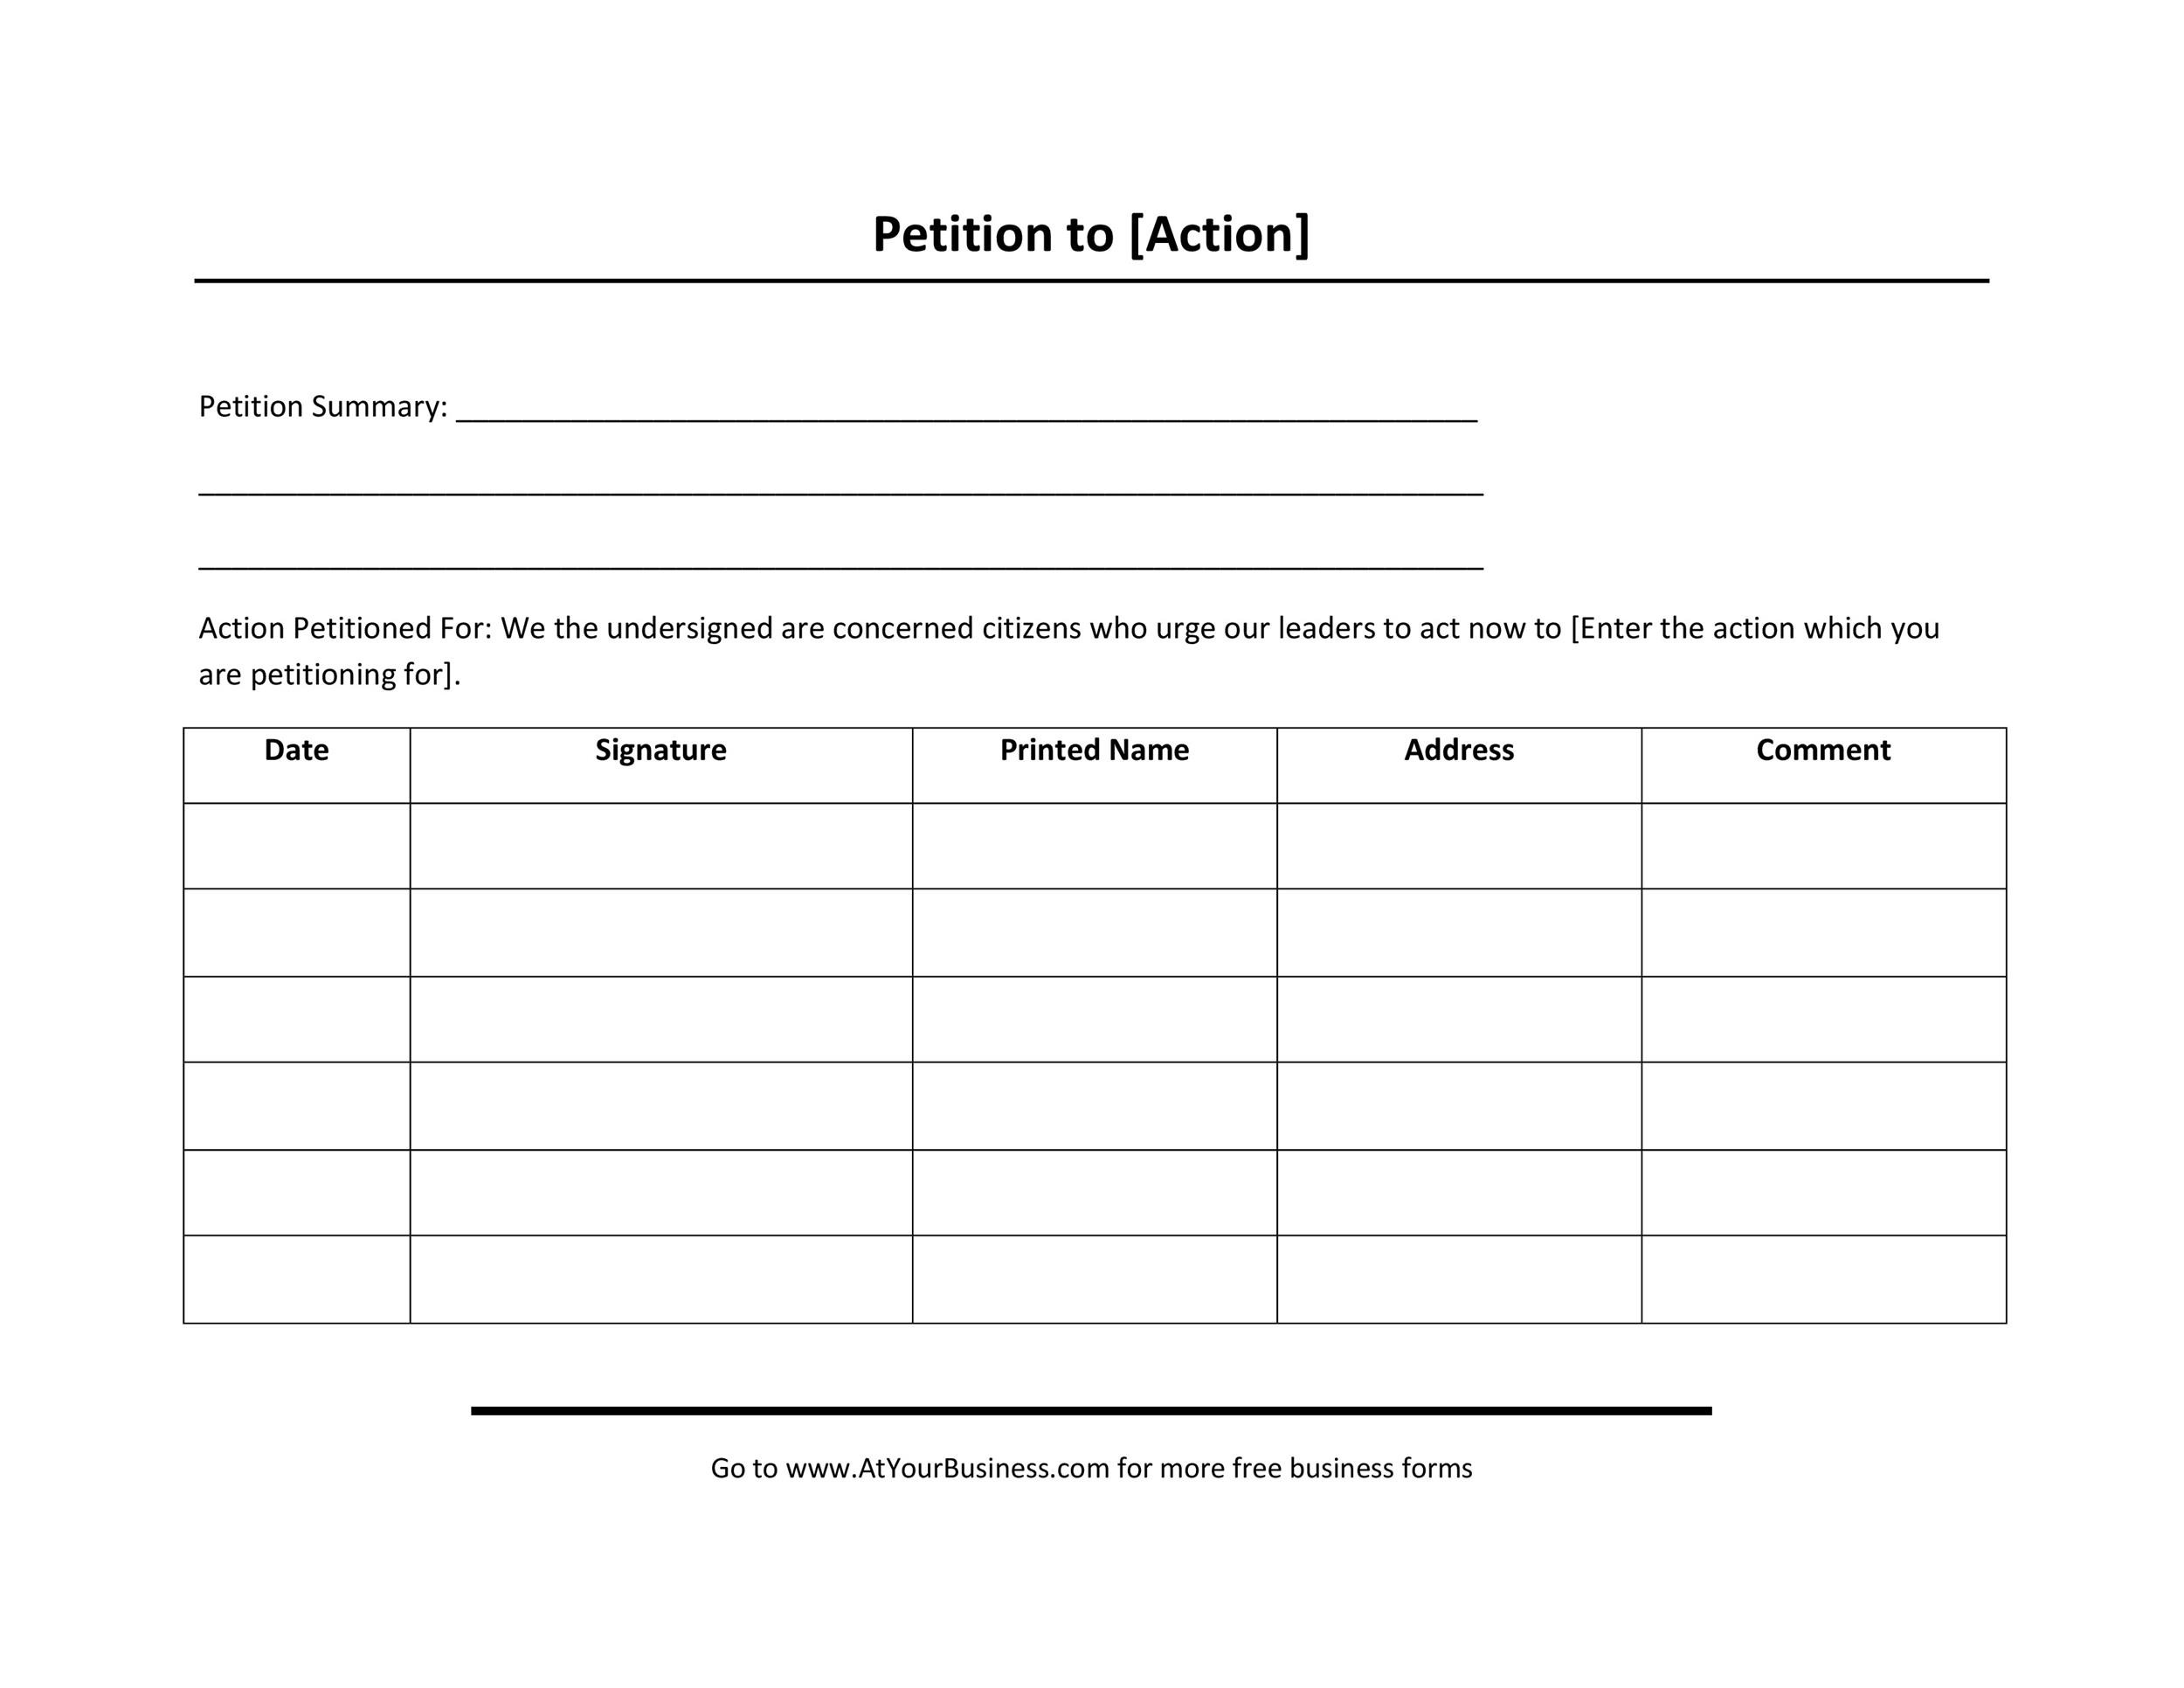 petition template to print - 30 petition templates how to write petition guide